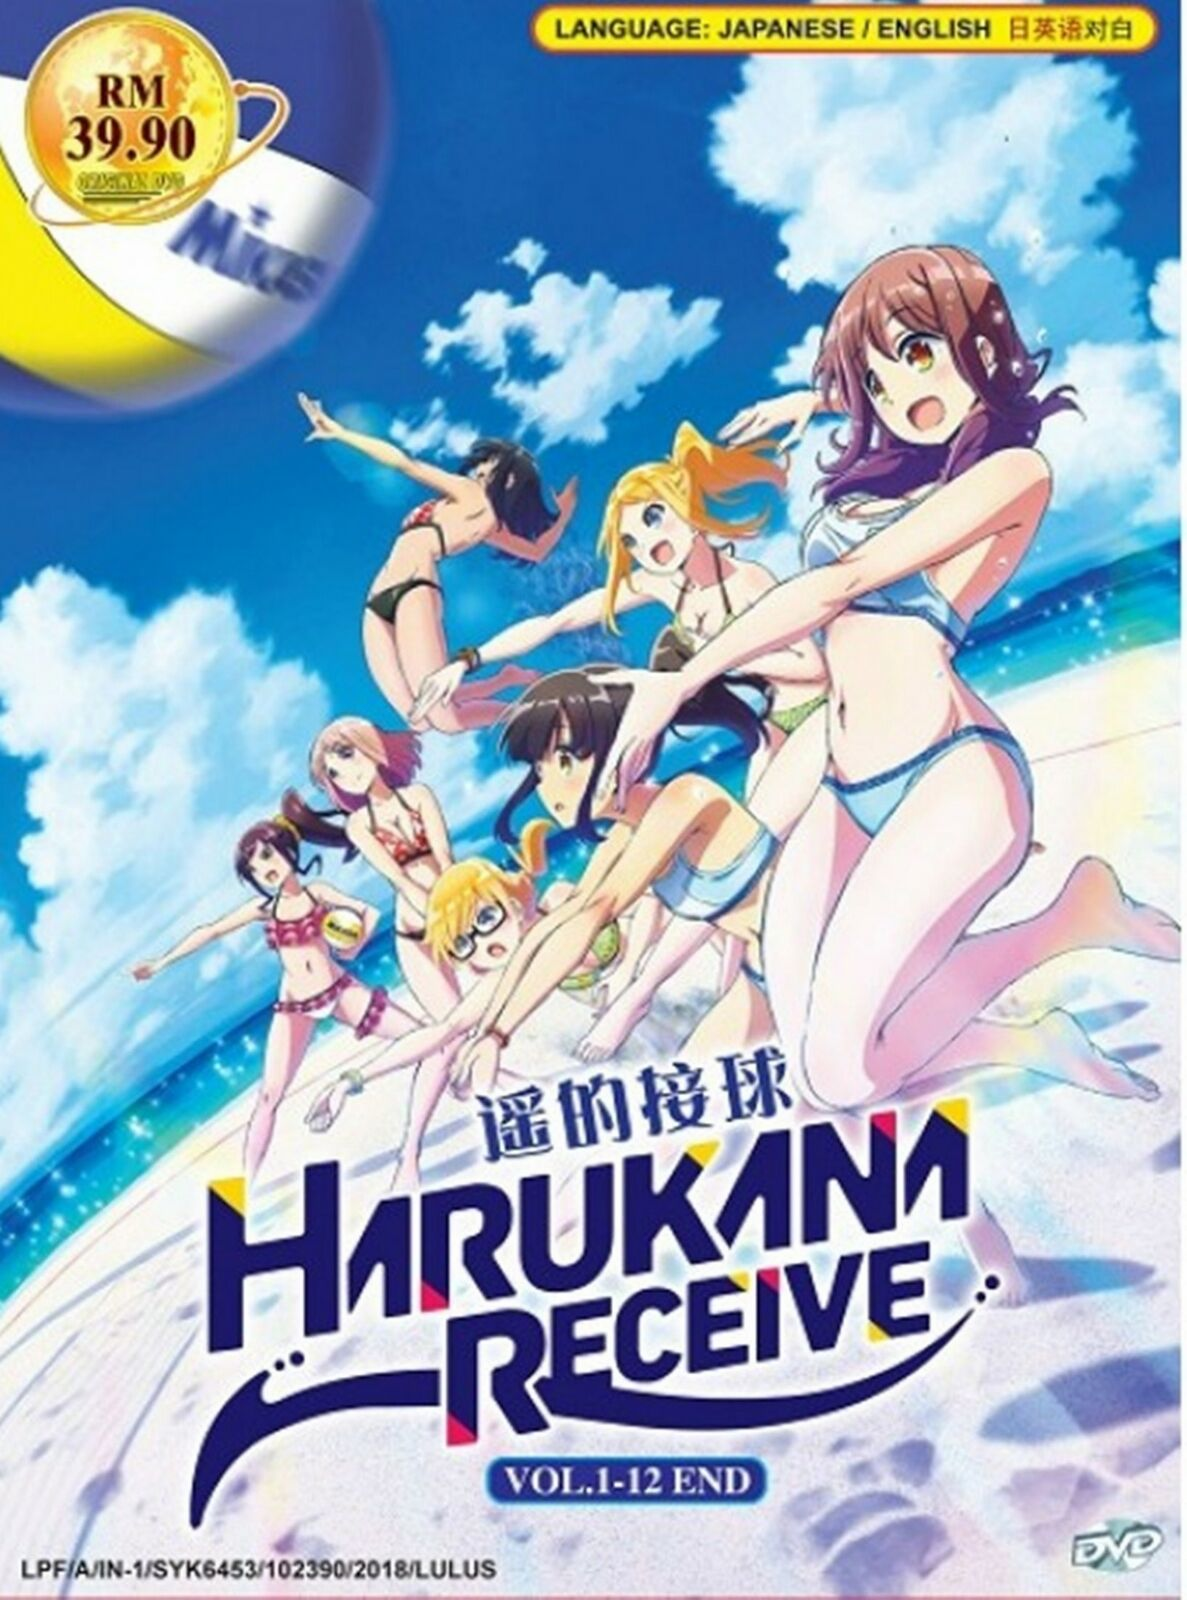 Harukana Receive (1-12 End)